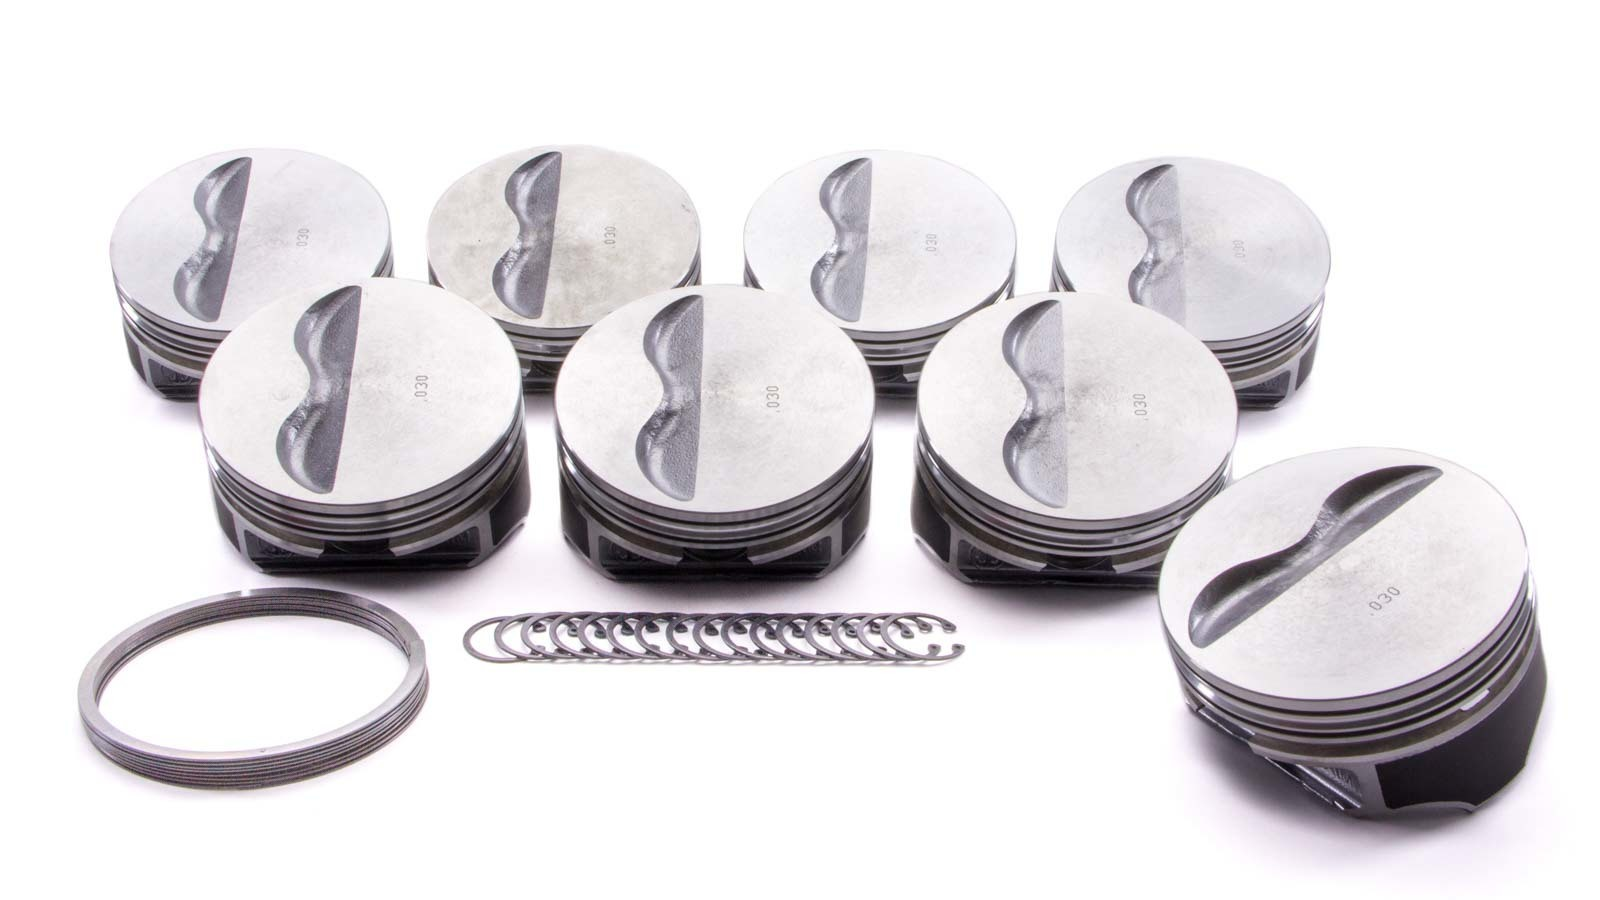 KB Performance Pistons 9908HC.060 Piston, Claimer Series, Hypereutectic, 4.060 in Bore, 5/64 x 5/64 x 3/16 in Ring Grooves, Minus 5.0 cc, Small Block Chevy, Set of 8